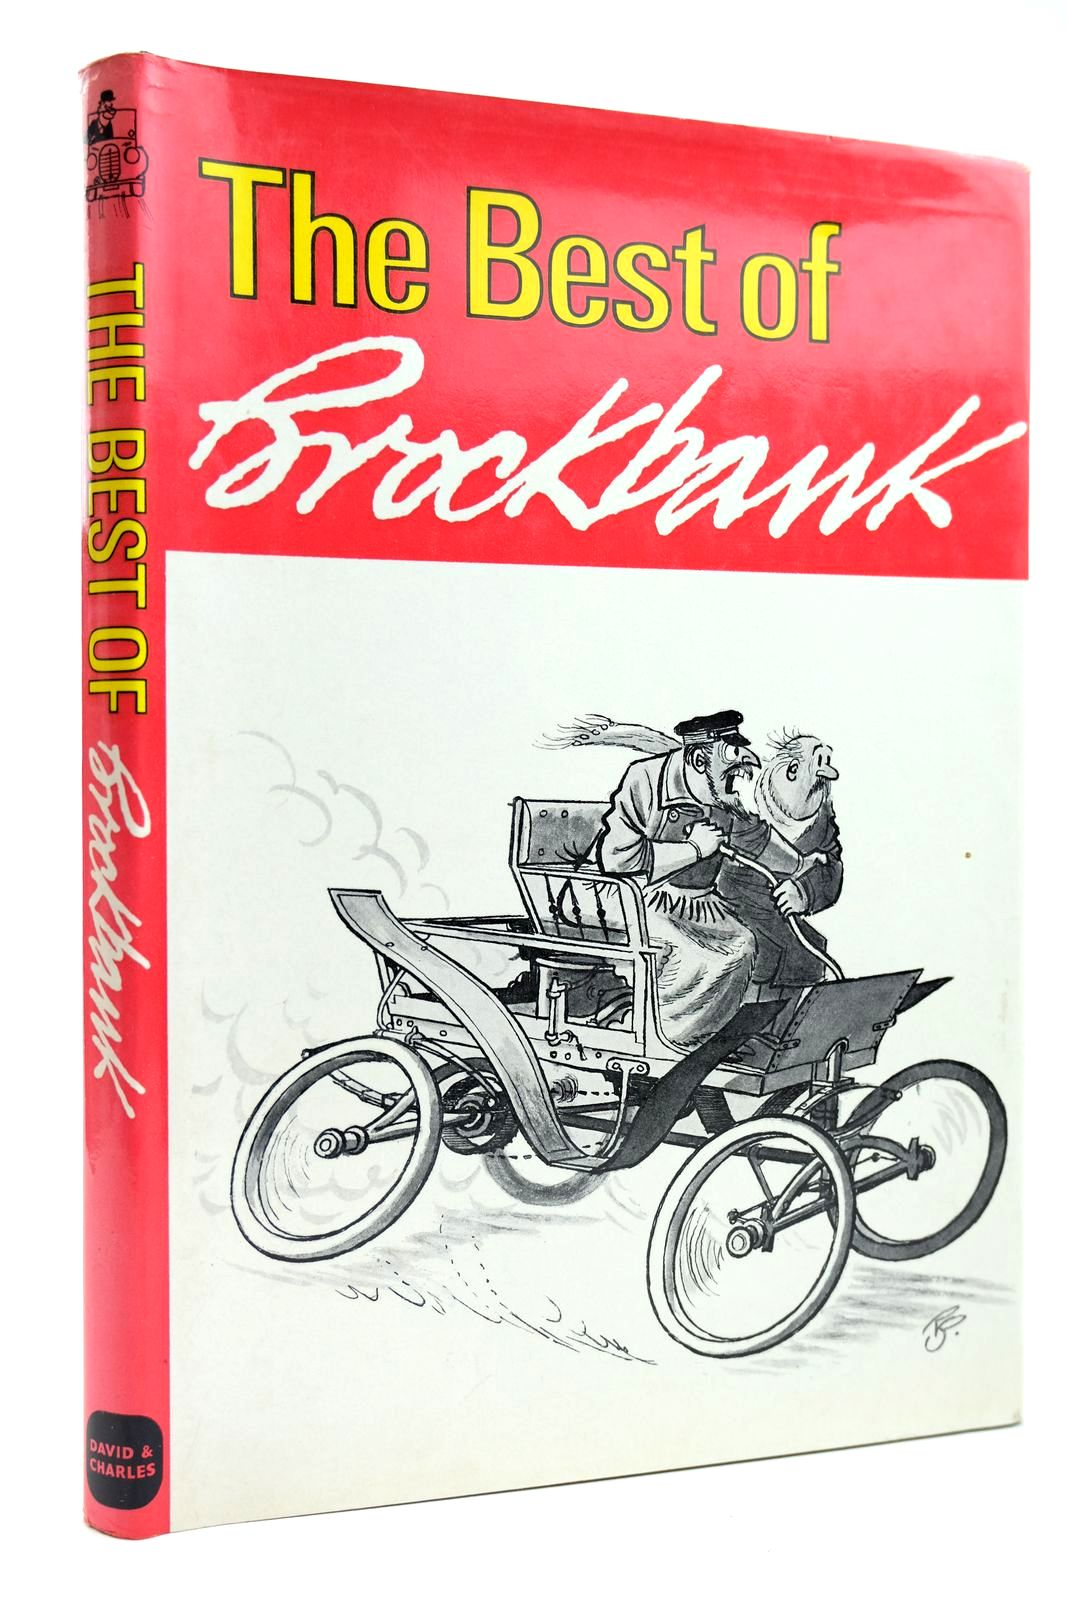 Photo of THE BEST OF BROCKBANK- Stock Number: 2131823